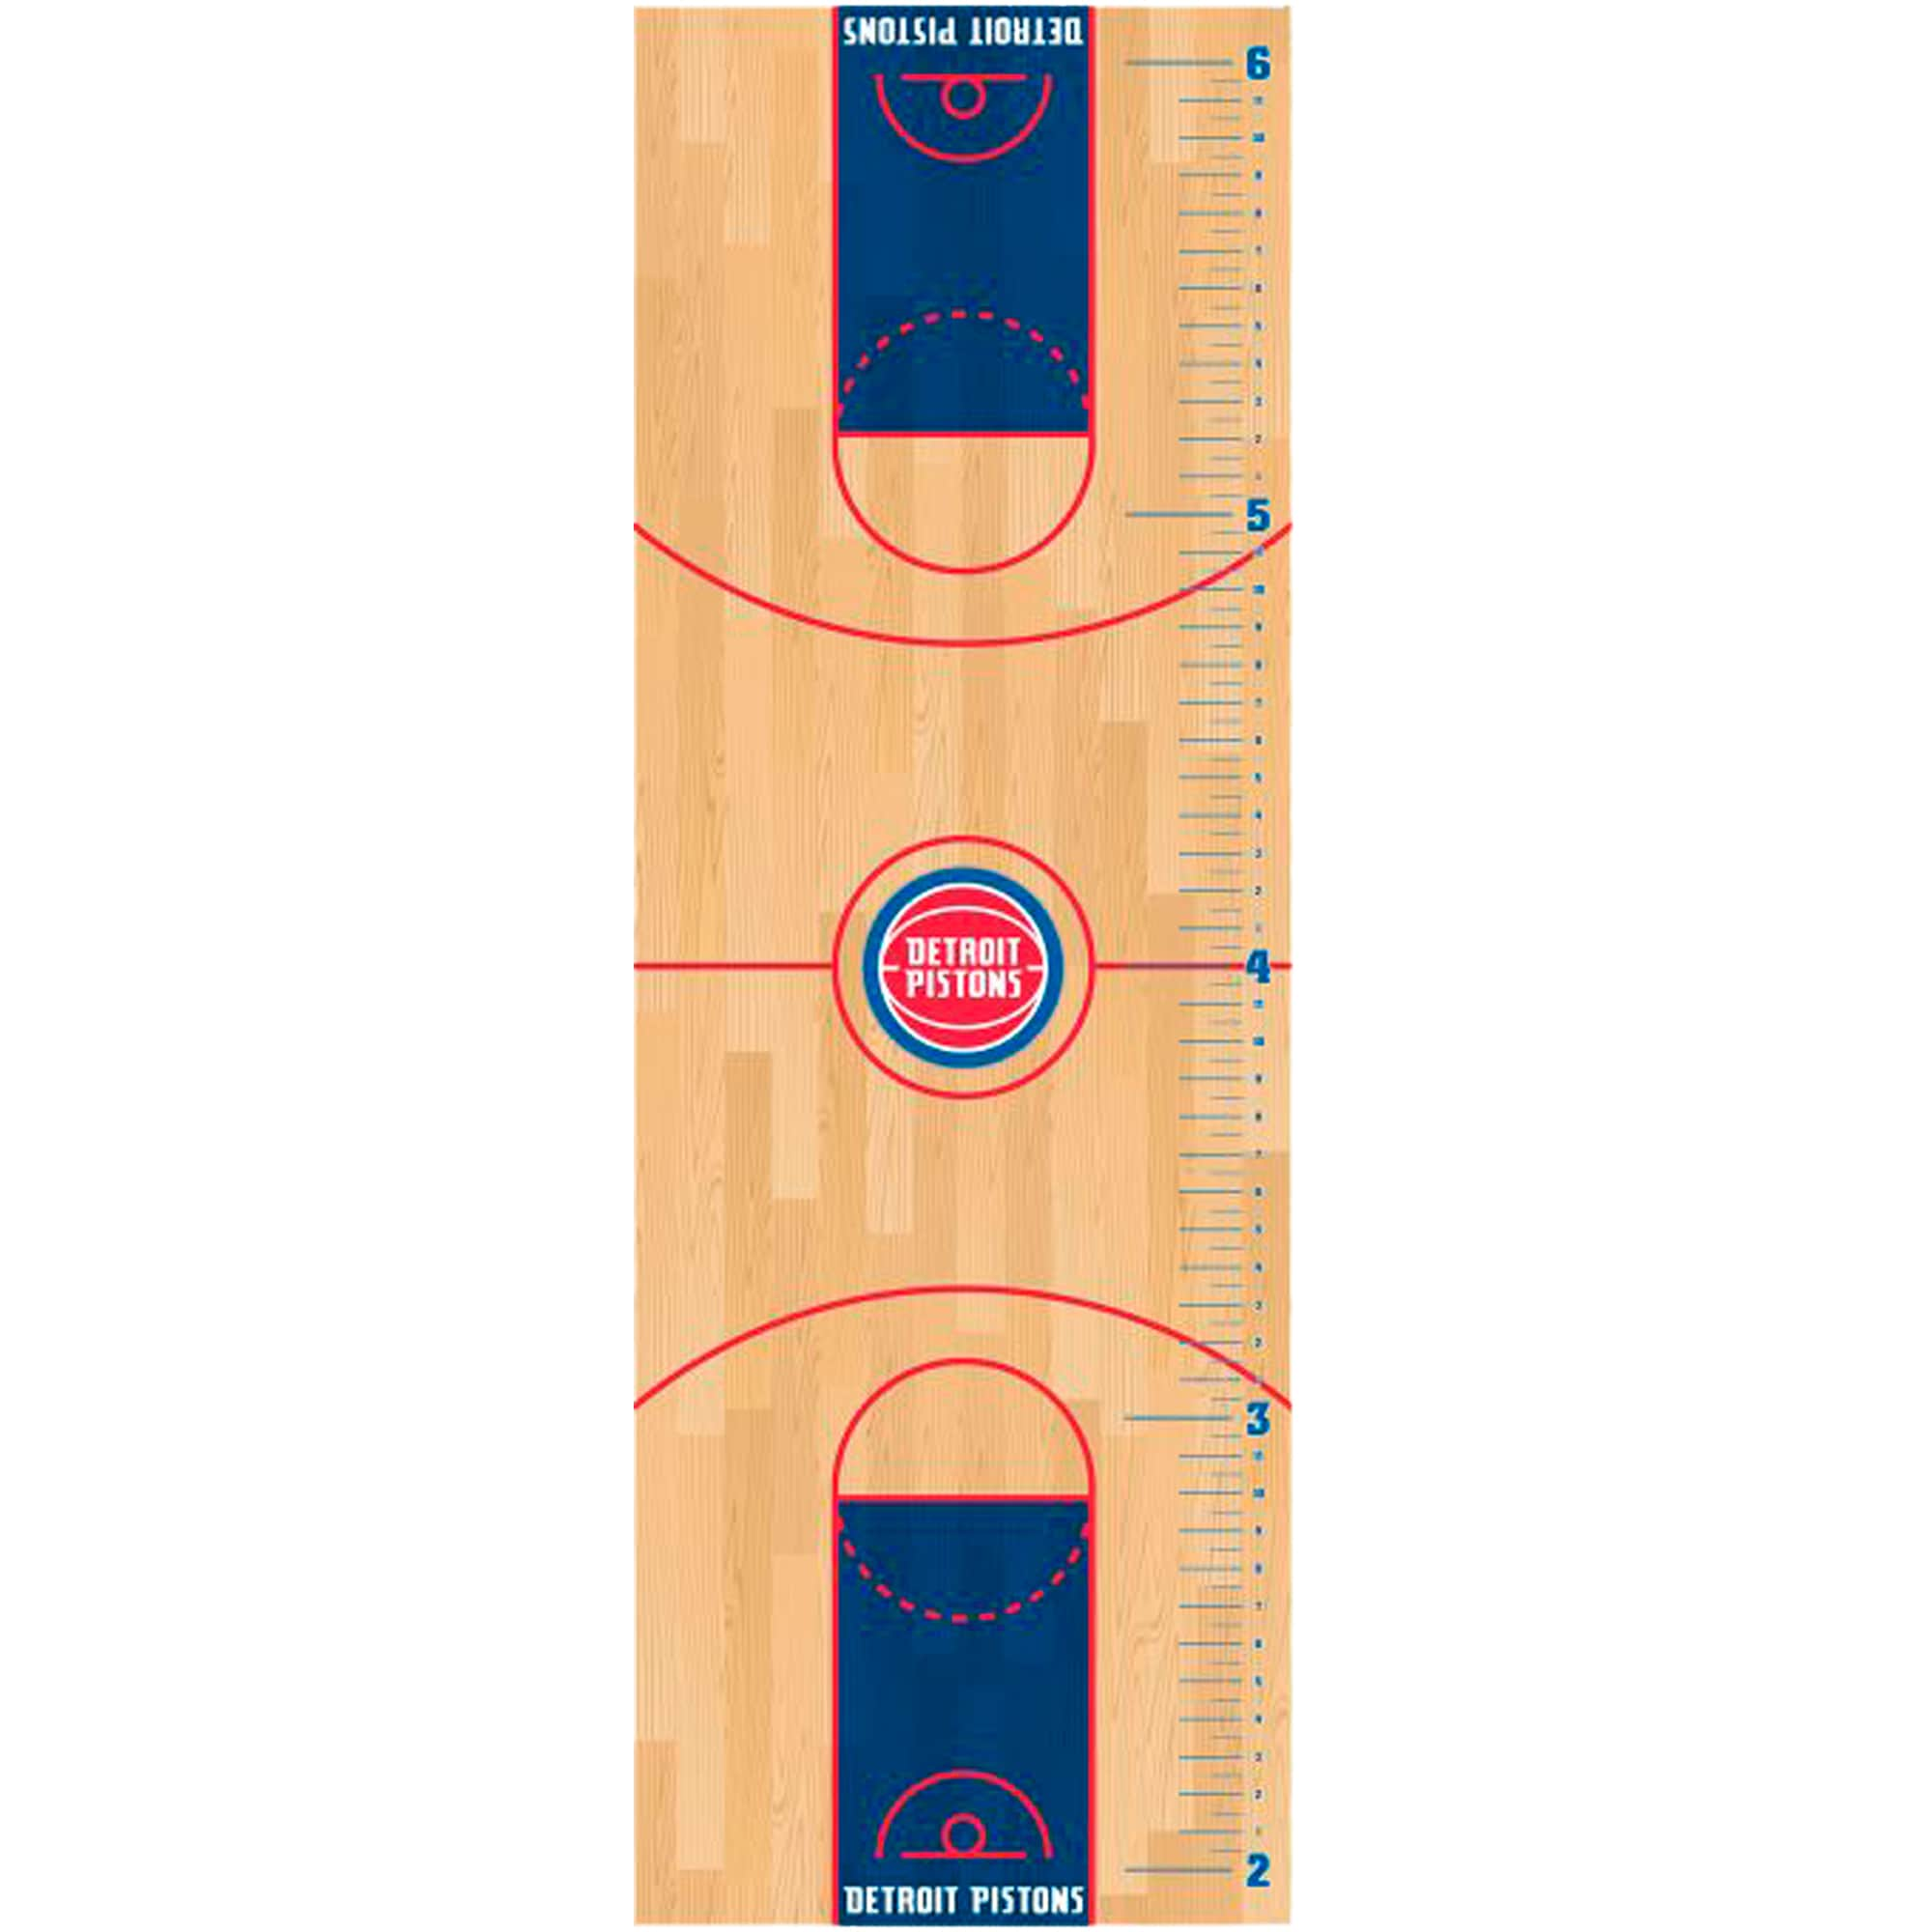 Detroit Pistons Fathead Basketball Court Large Removable Growth Chart